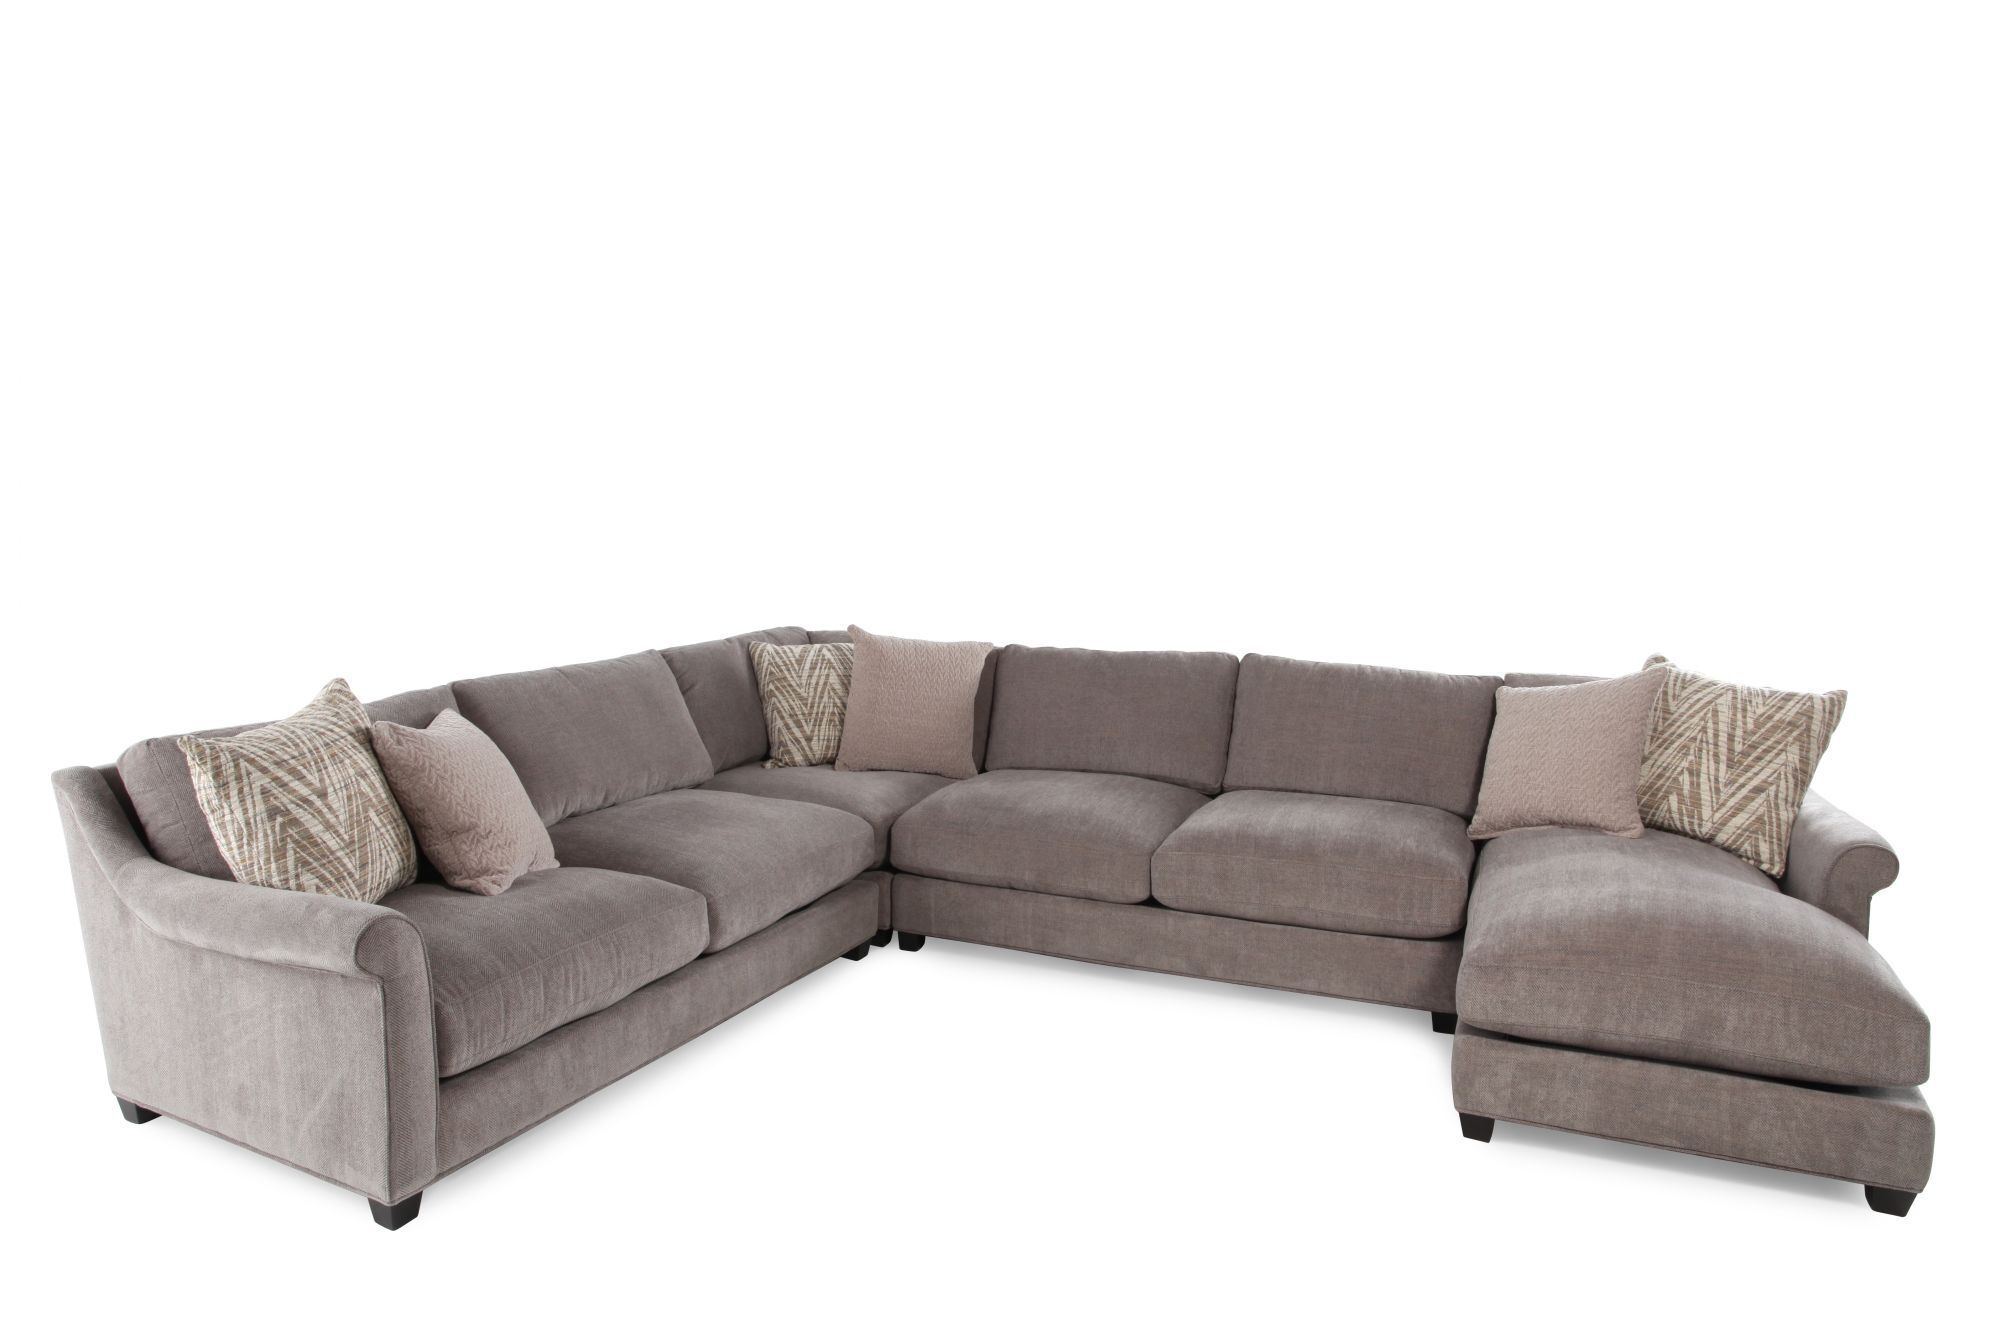 Jonathan Louis Shearson Four-Piece Sectional  sc 1 st  Mathis Brothers : jonathan louis chaise lounge - Sectionals, Sofas & Couches